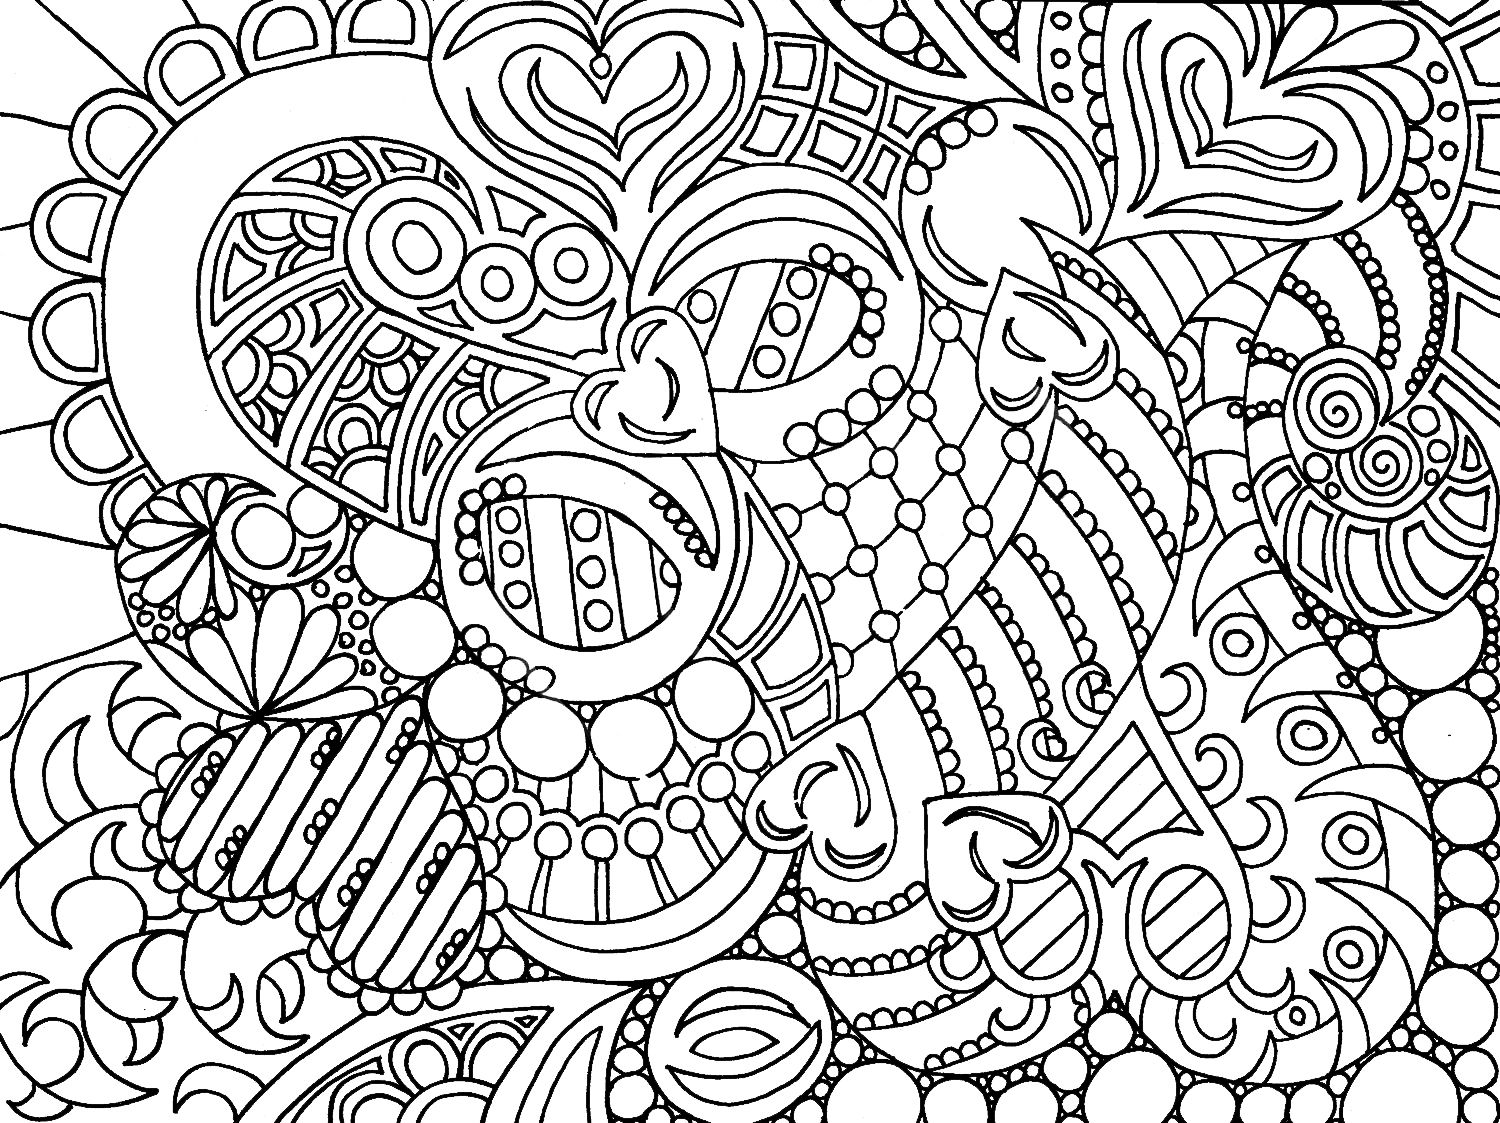 Co Colouring In Sheets Detailed - Amazing of simple coloring pages for adults for adult co 3223